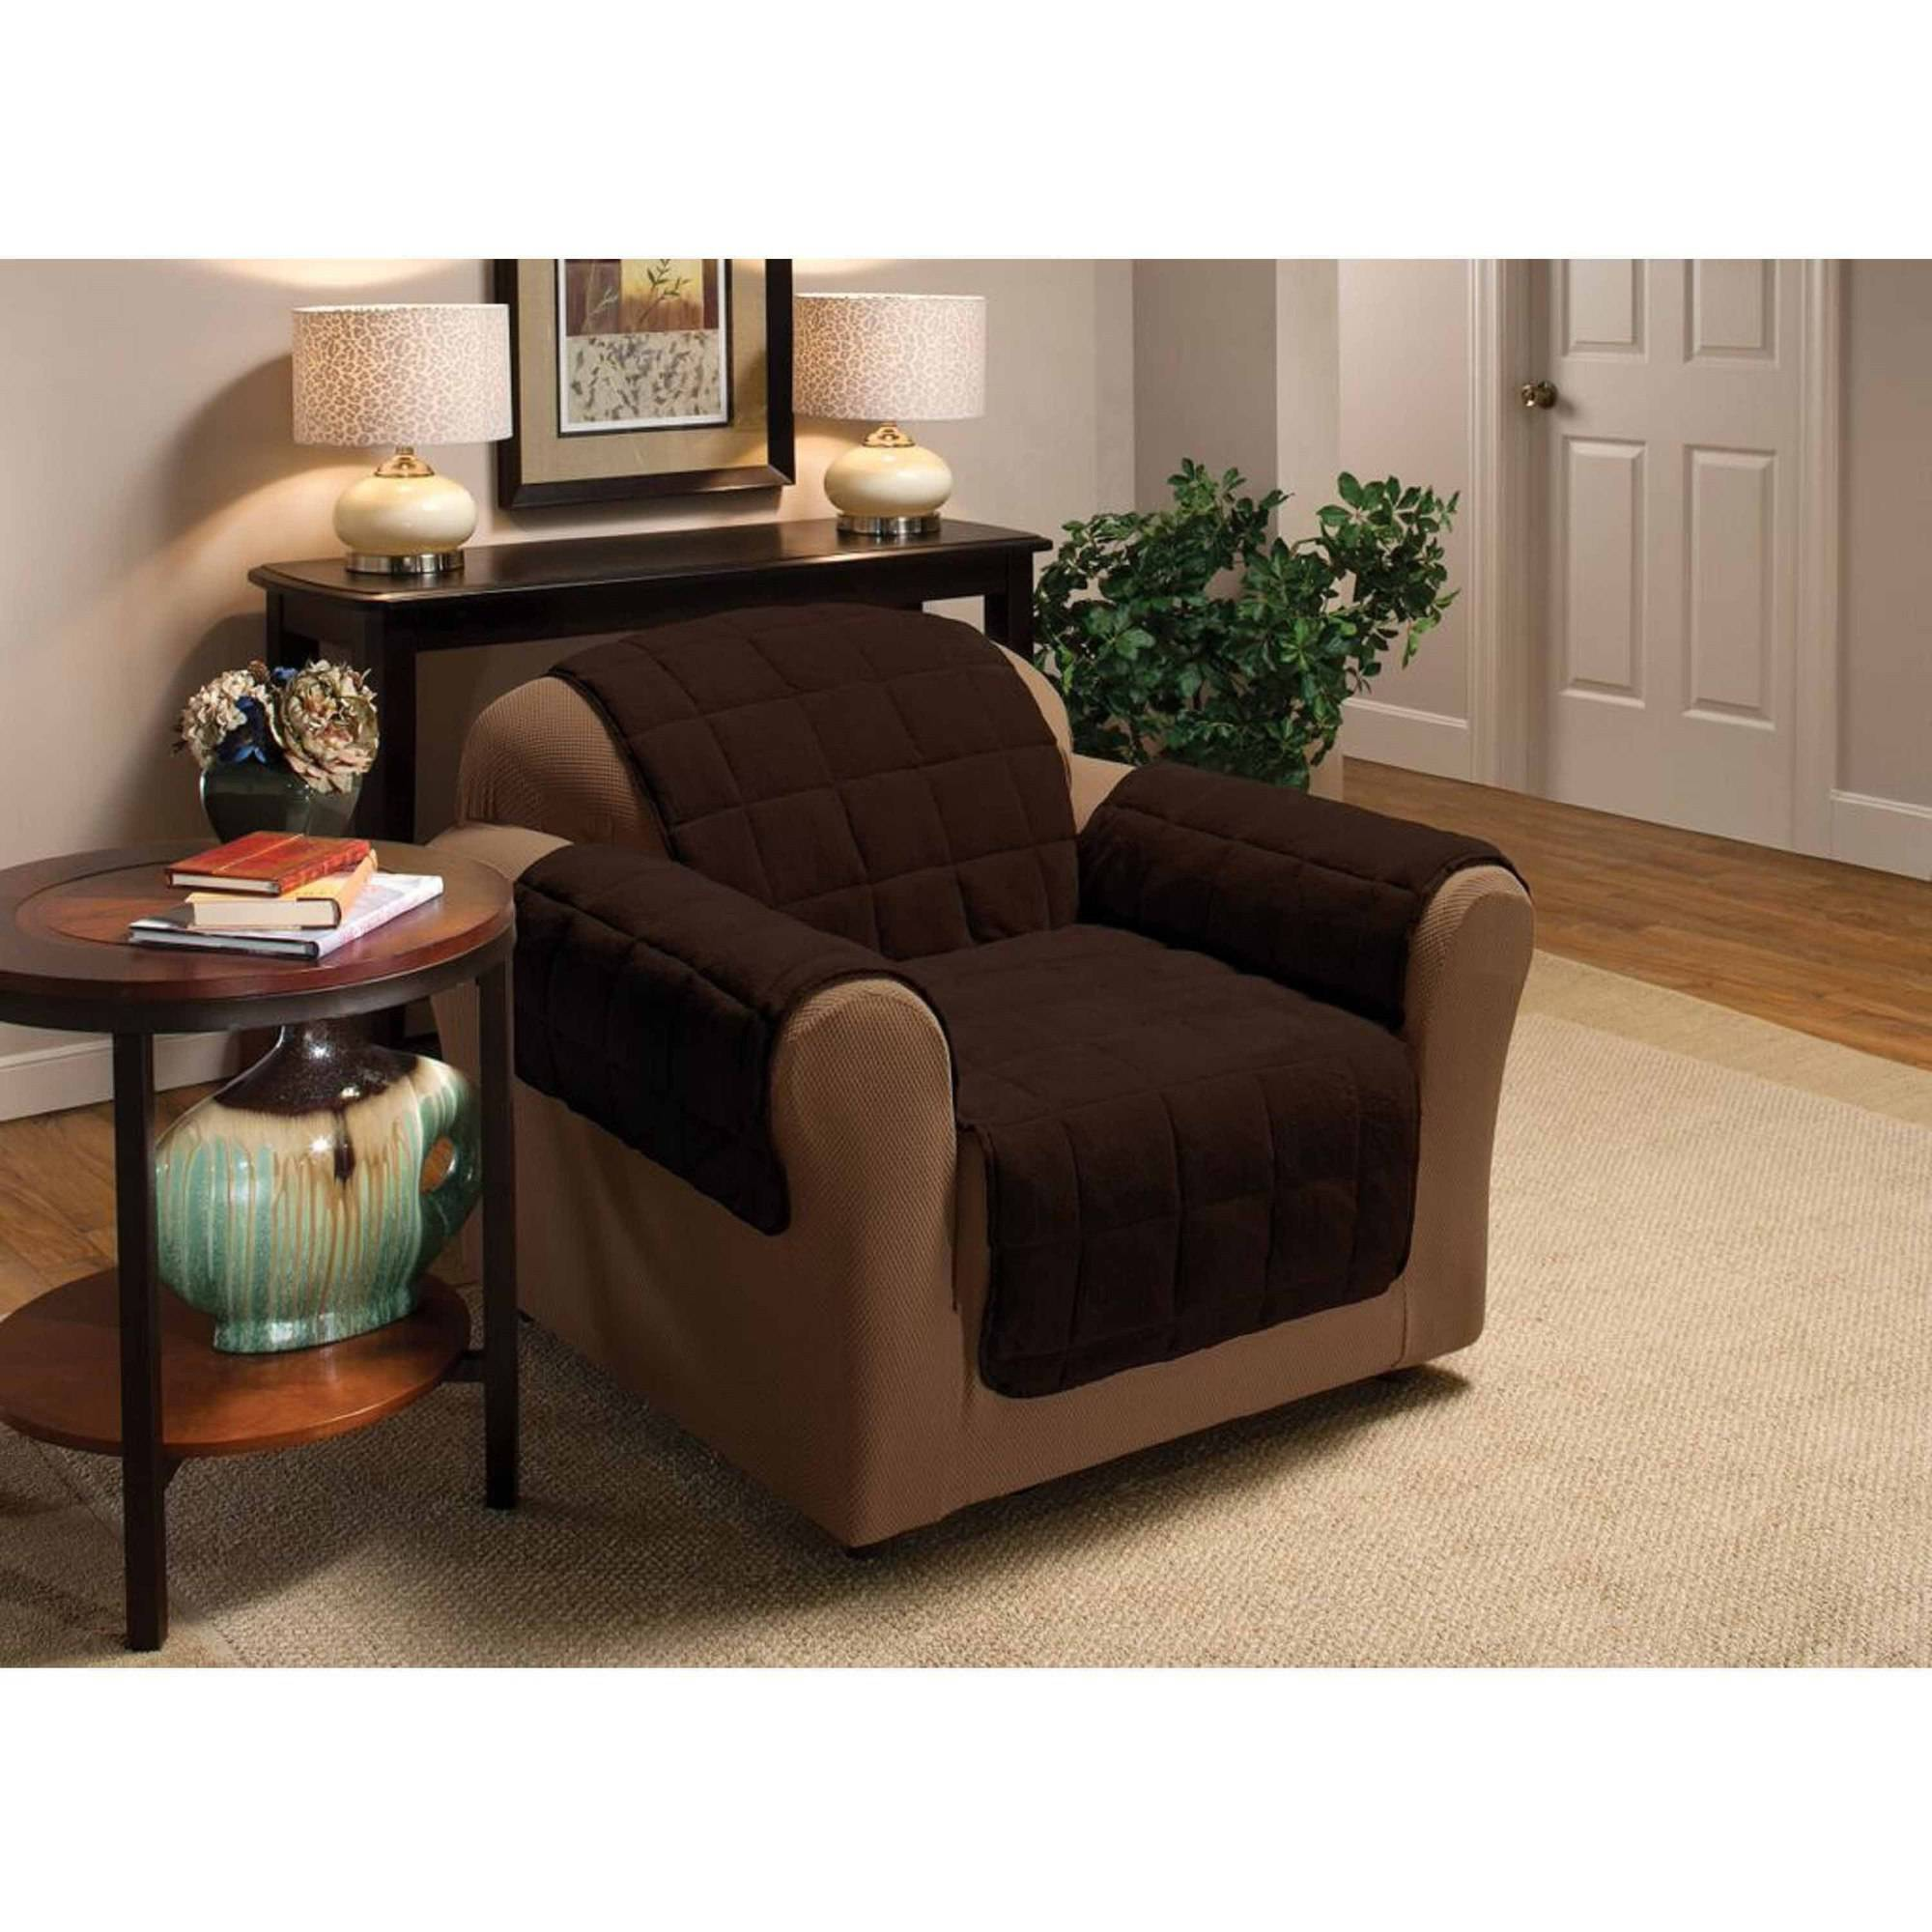 Innovative Textile Solutions Plush Chair Protector